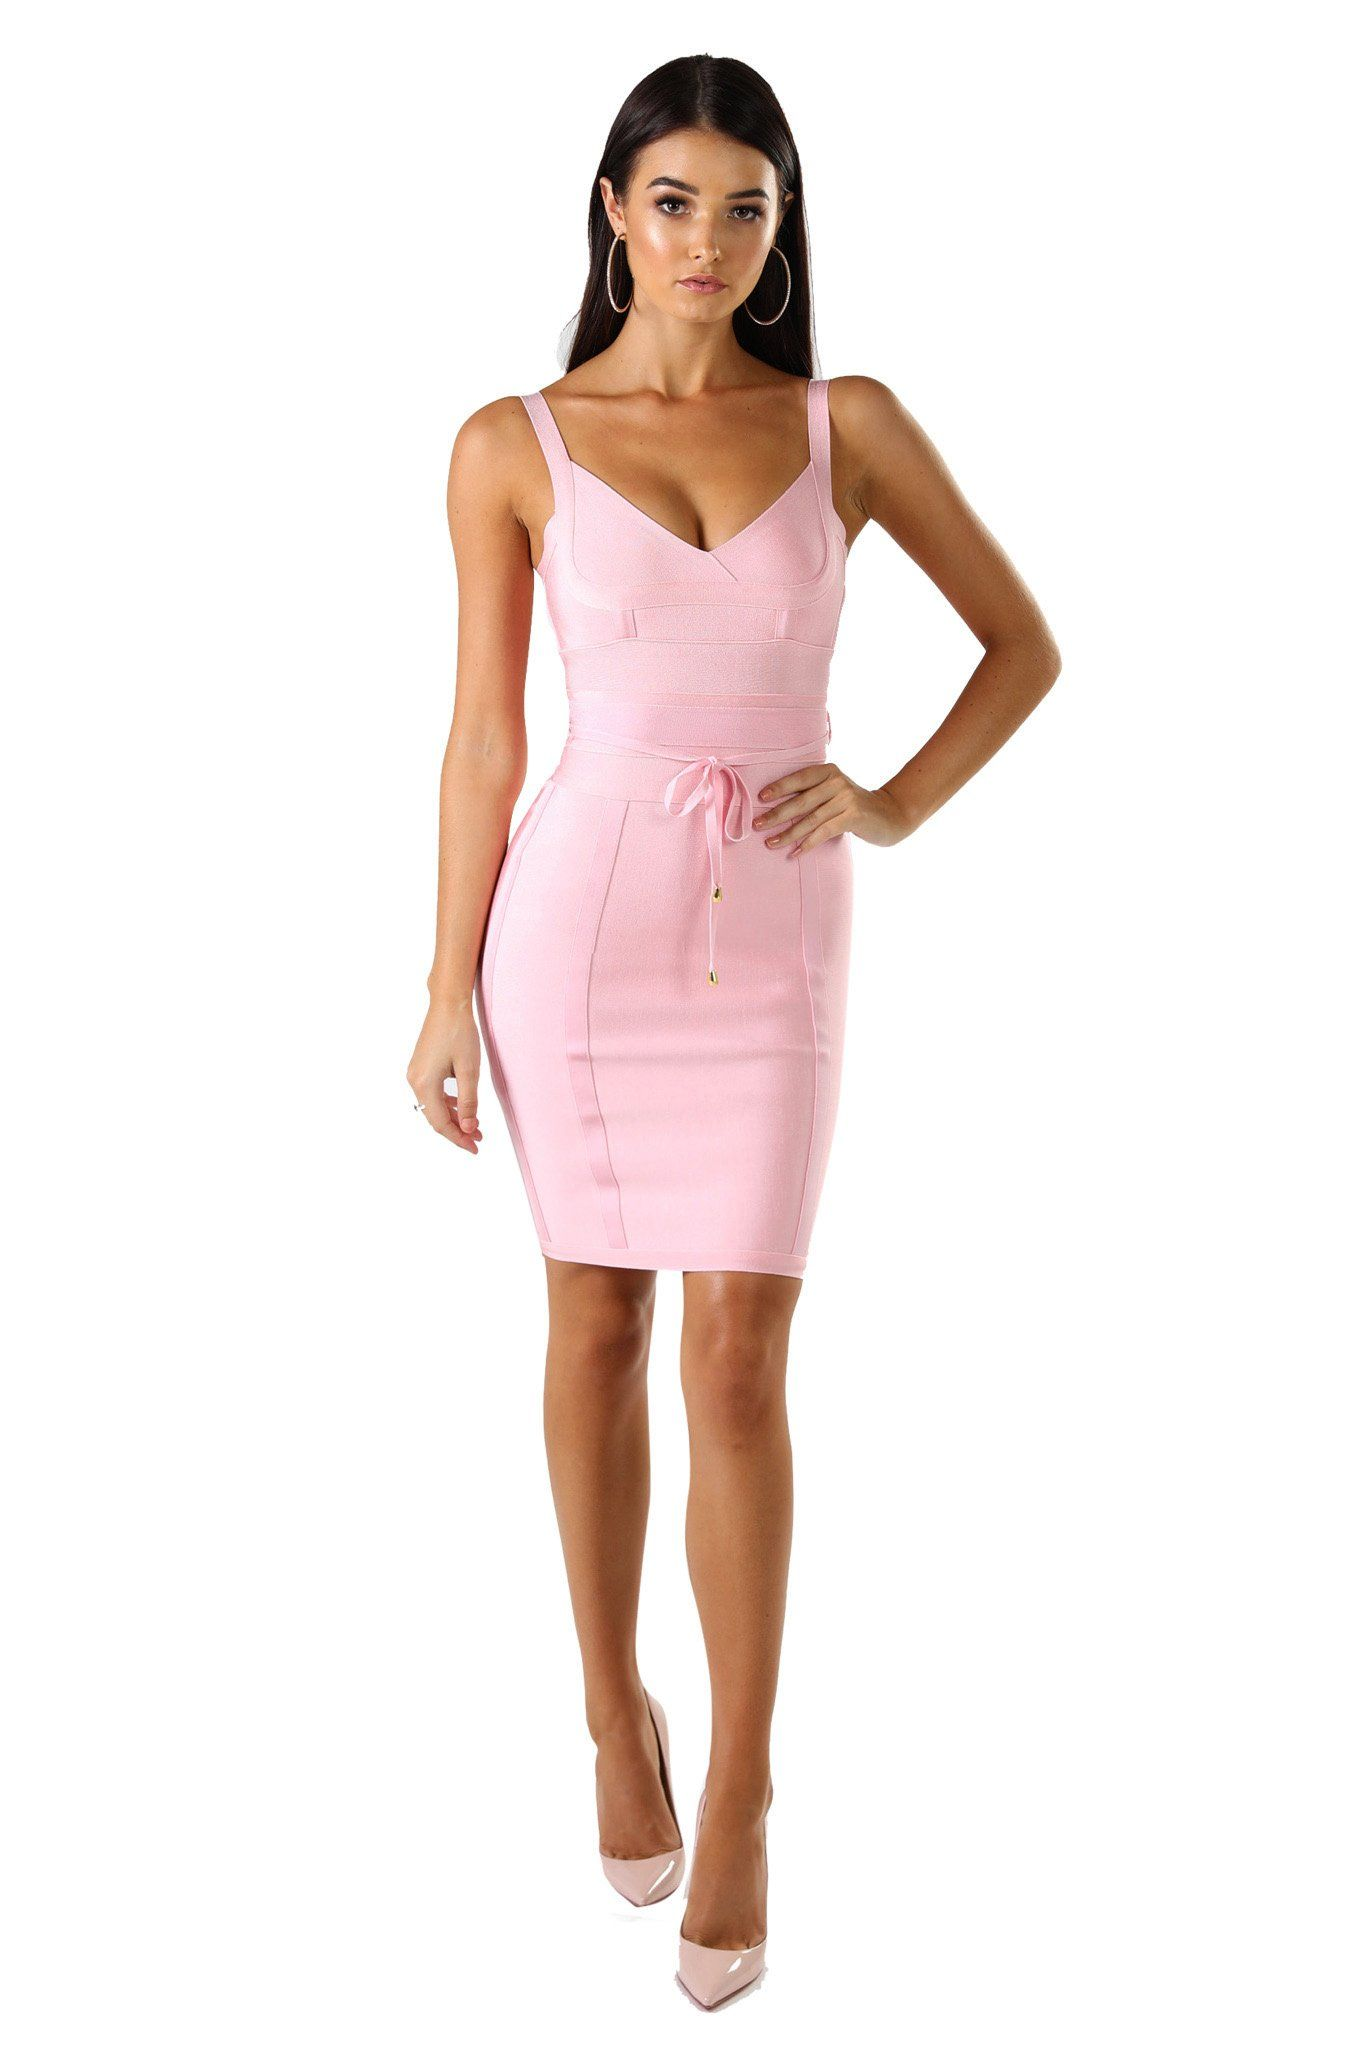 Baby pink mini sleeveless bandage dress with thin shoulder straps, thin tie up bandage belt, and full-length back zipper